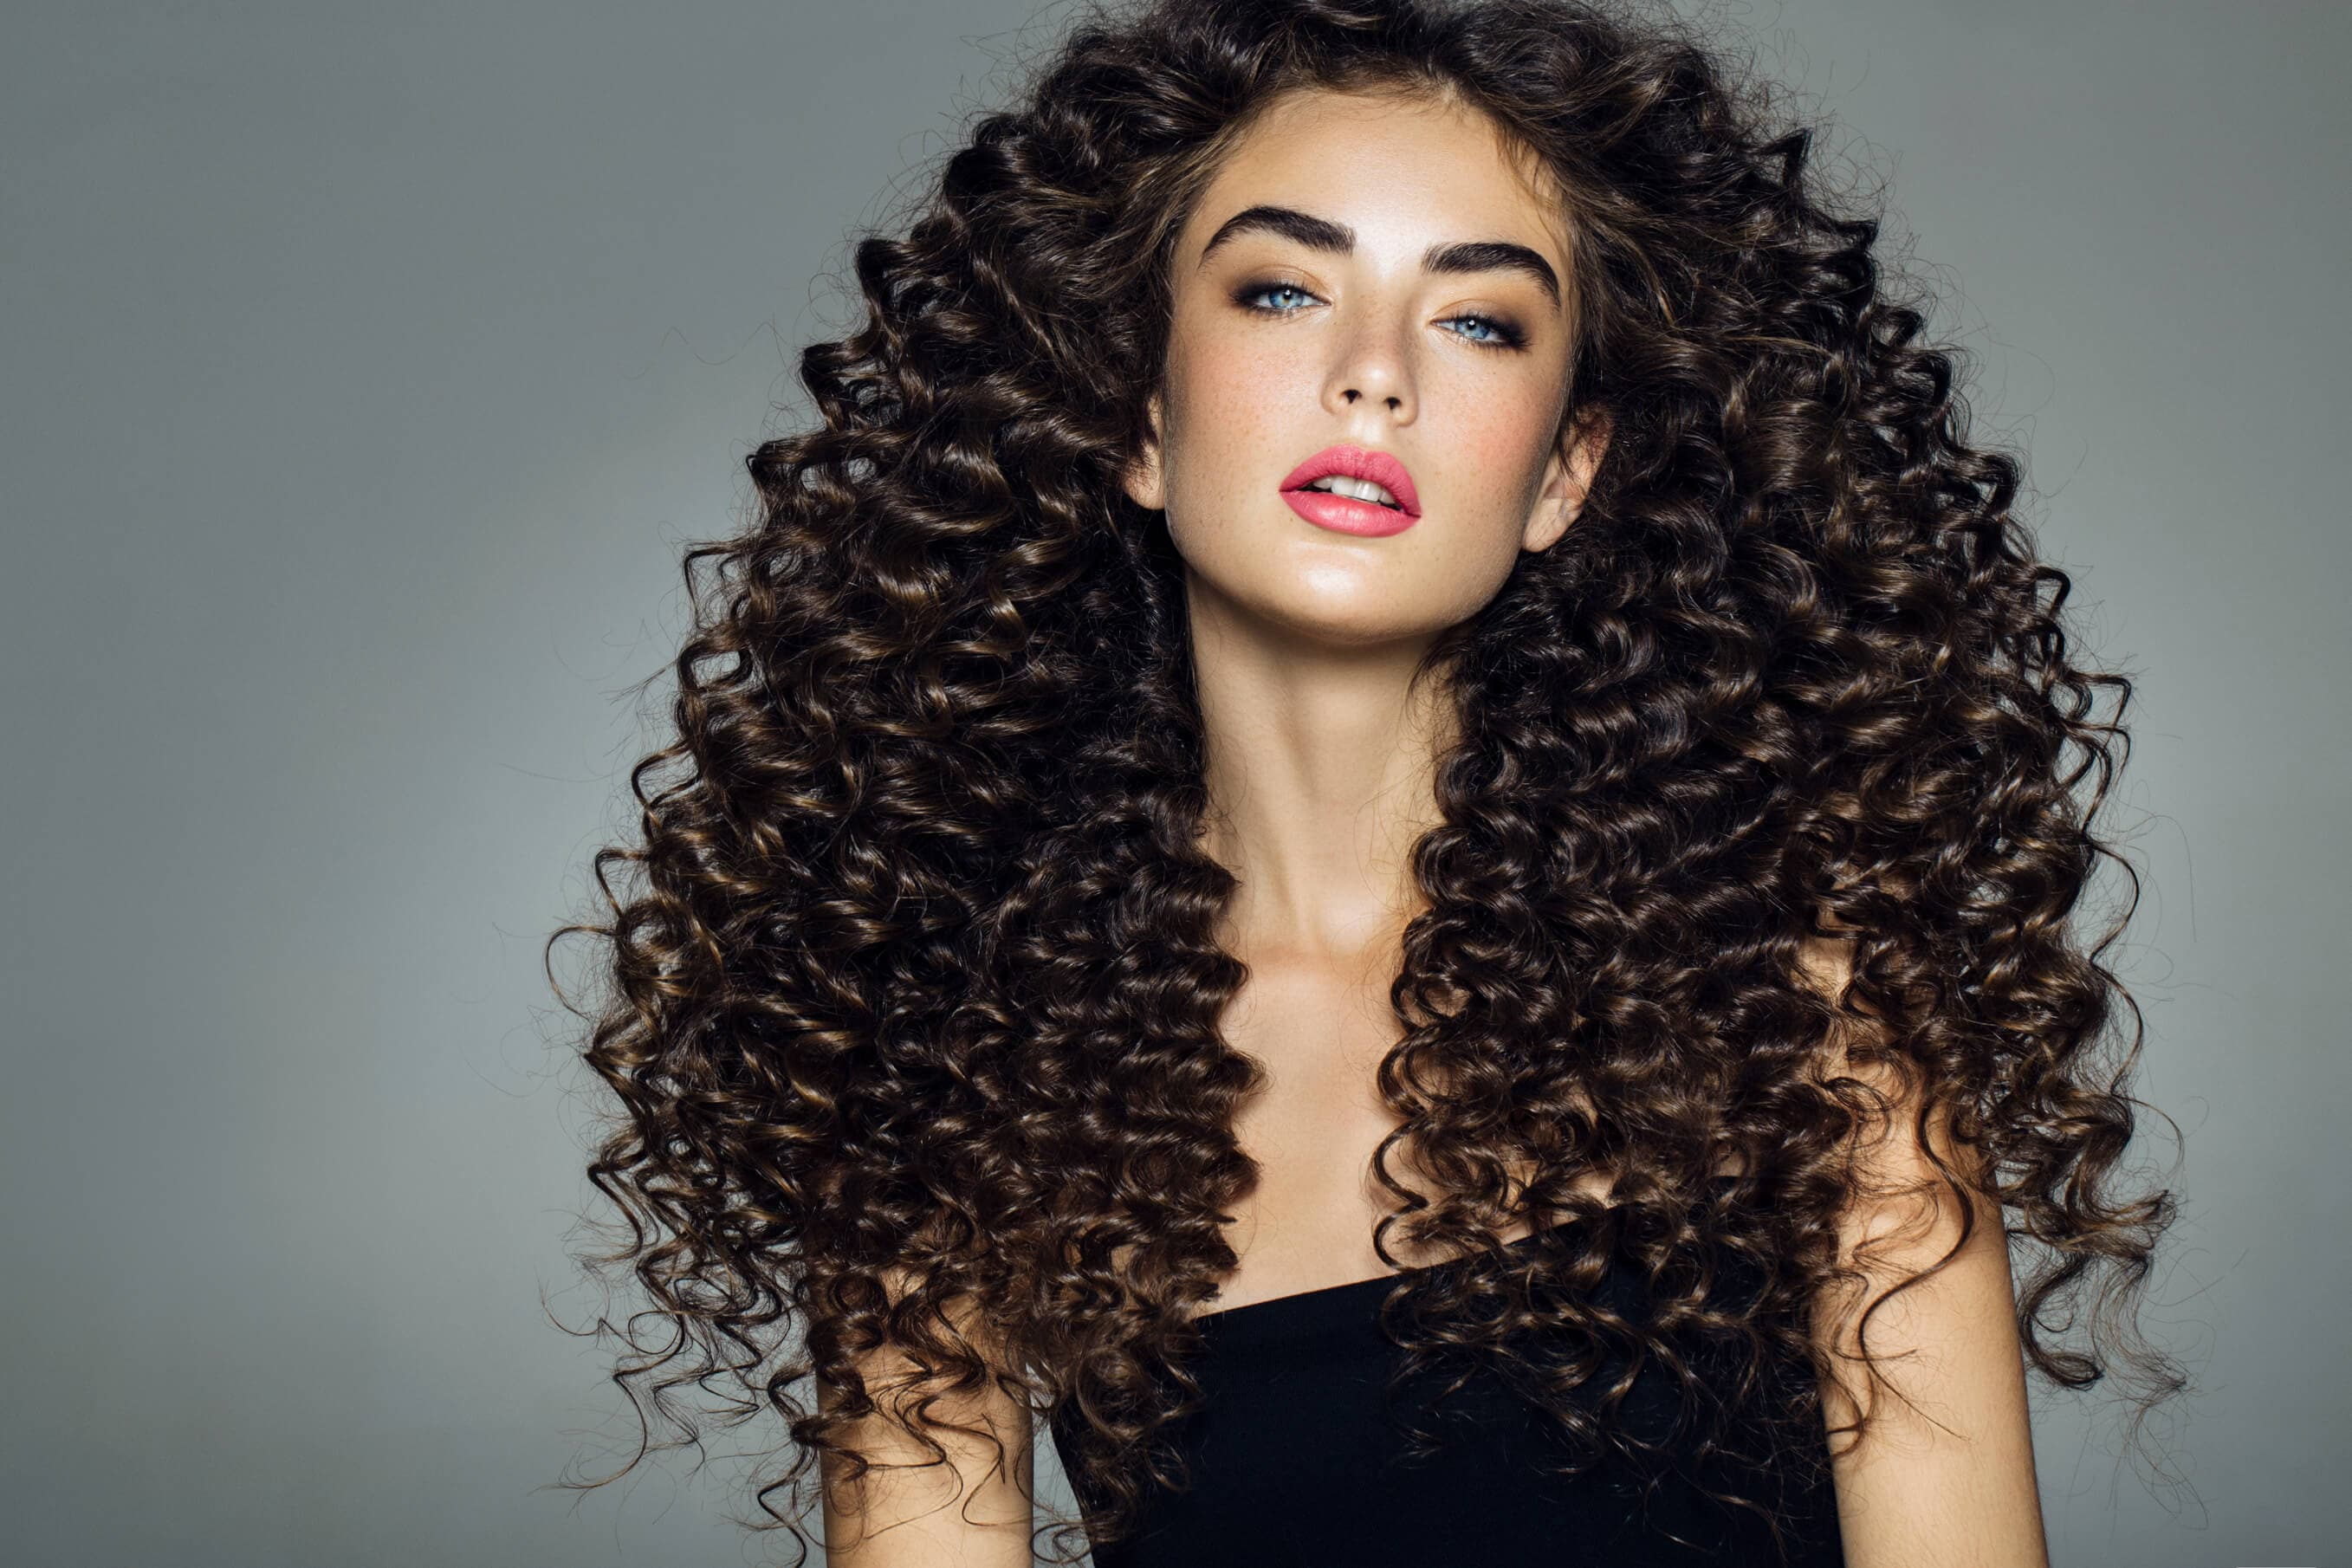 Keratin Treatment for Curly Hair: The Best Option for You